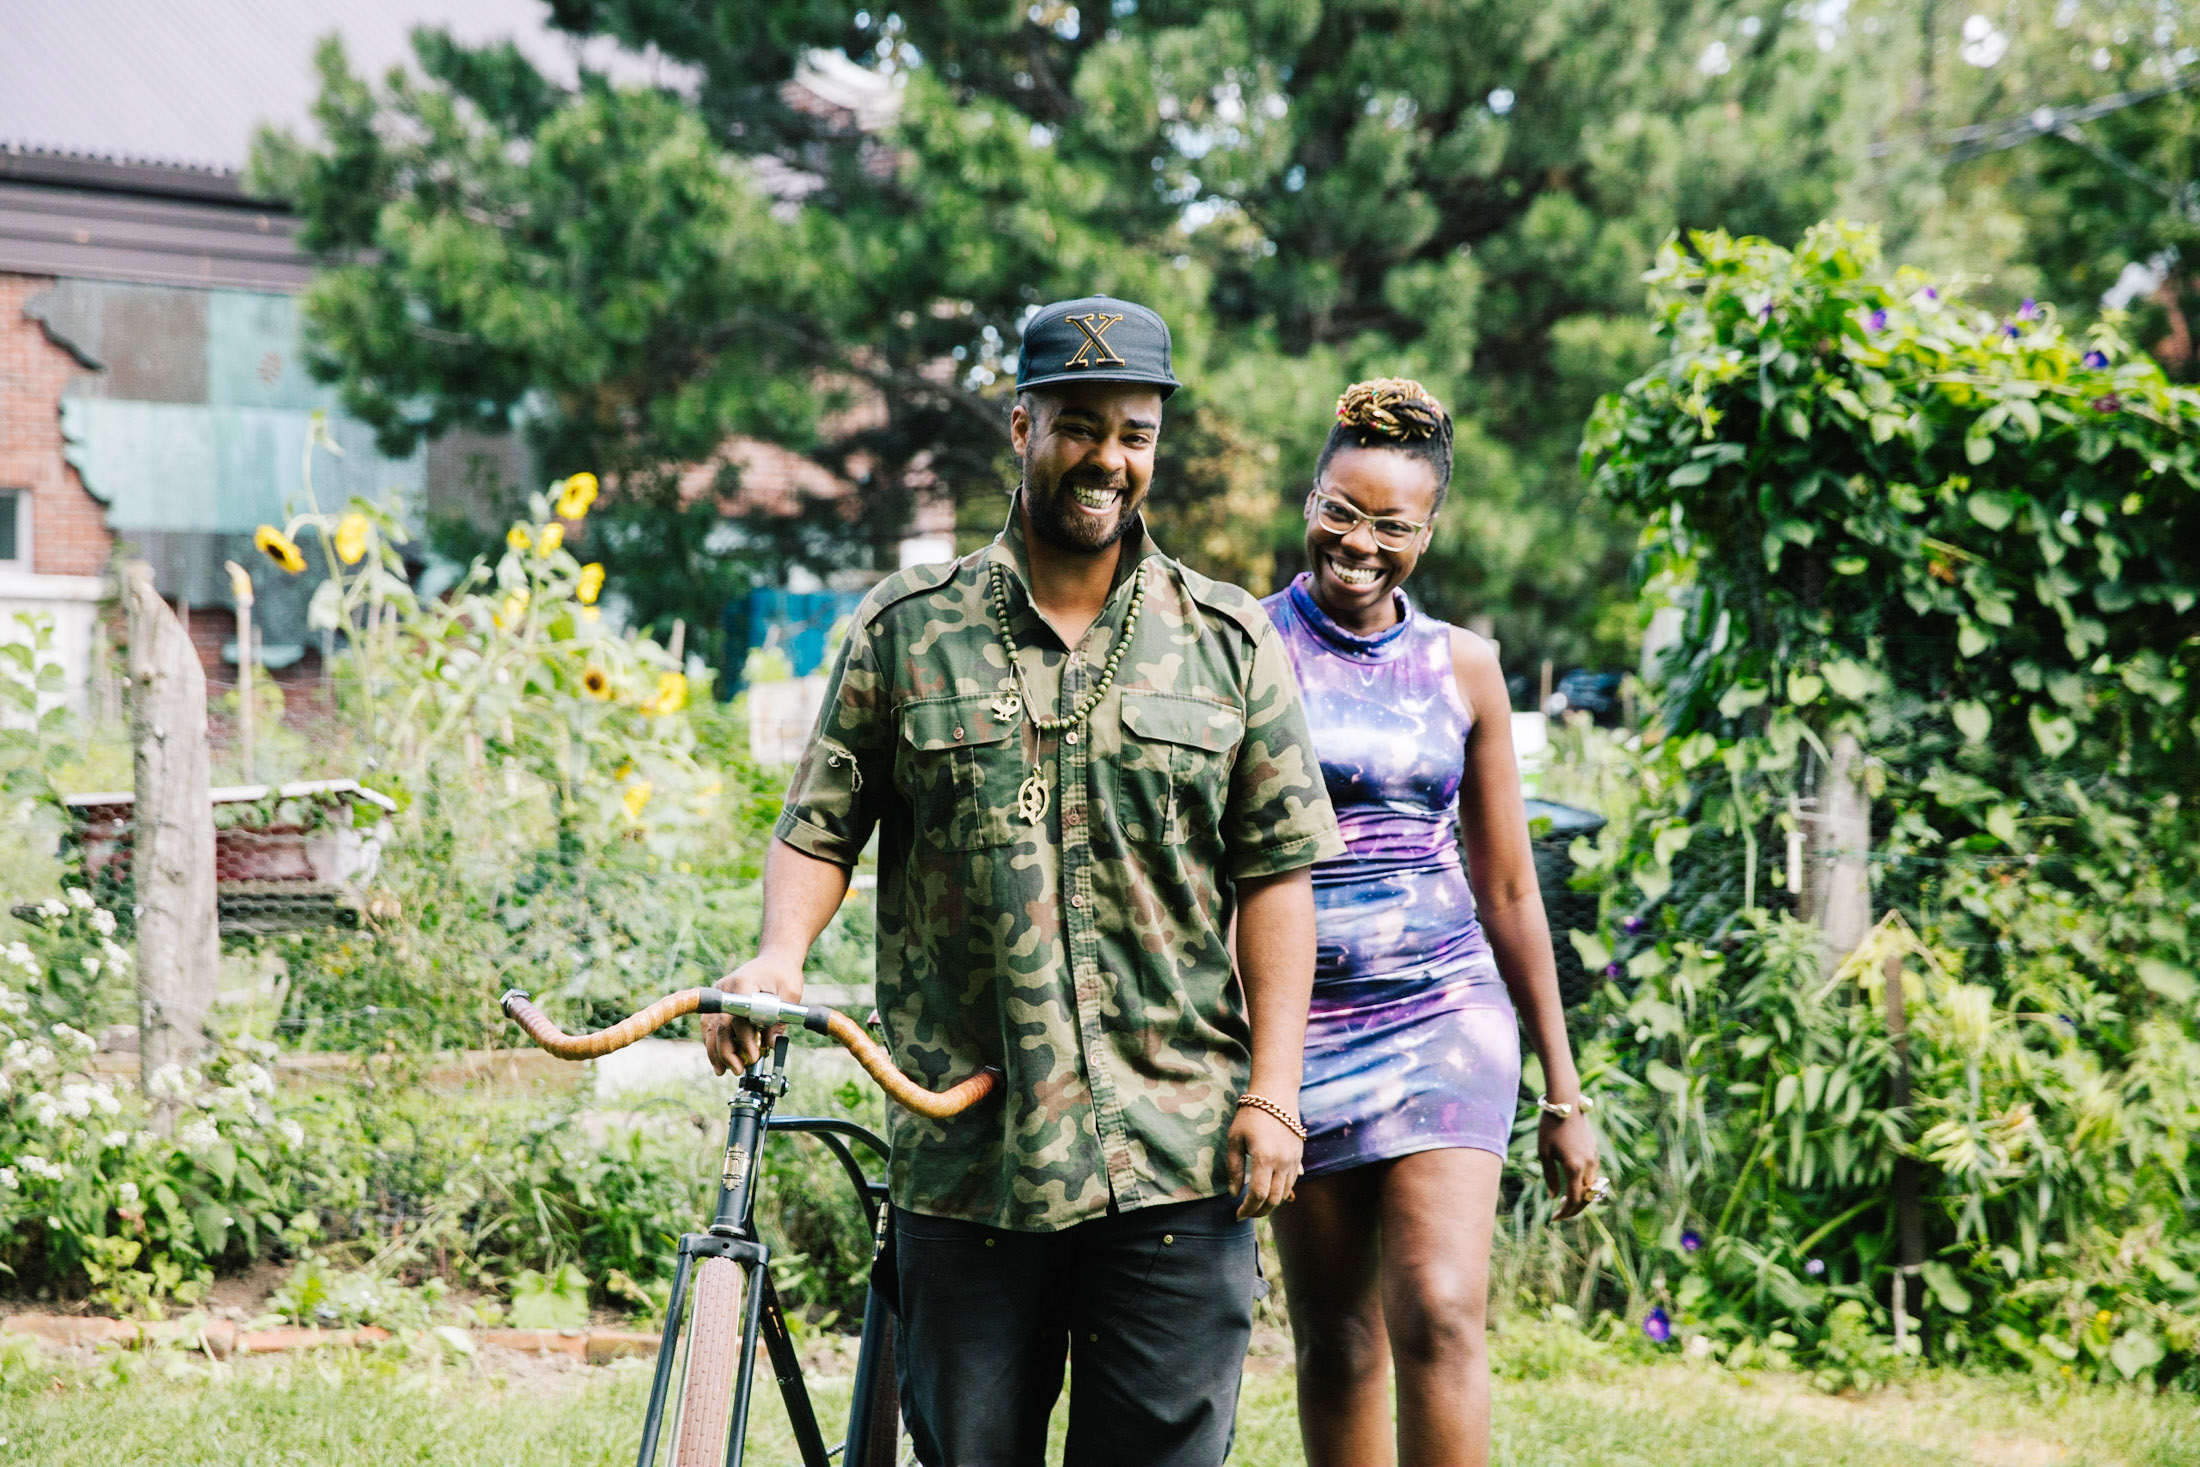 African American couple with bicycle in Toronto